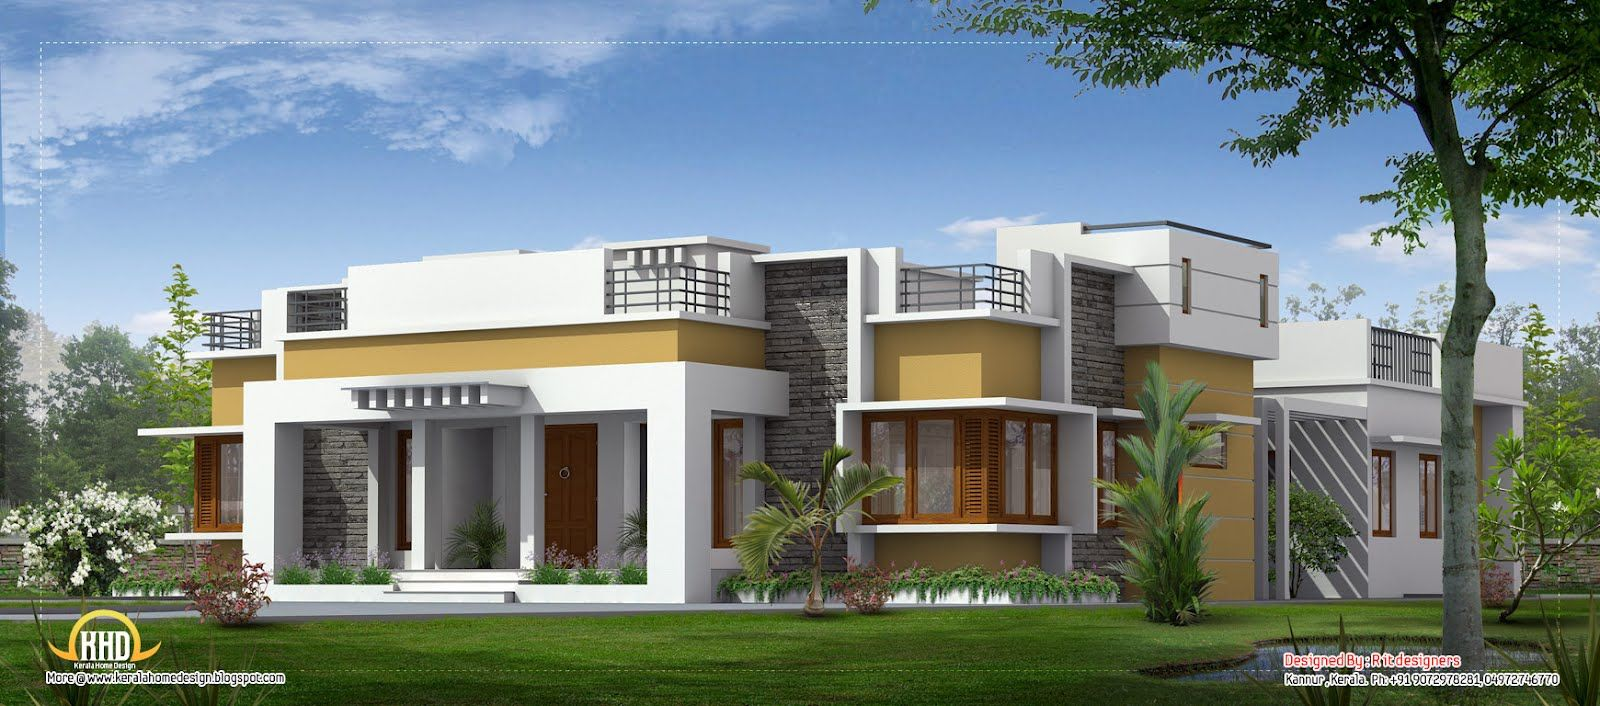 Single level designer home single floor house plans for Modern single floor house designs